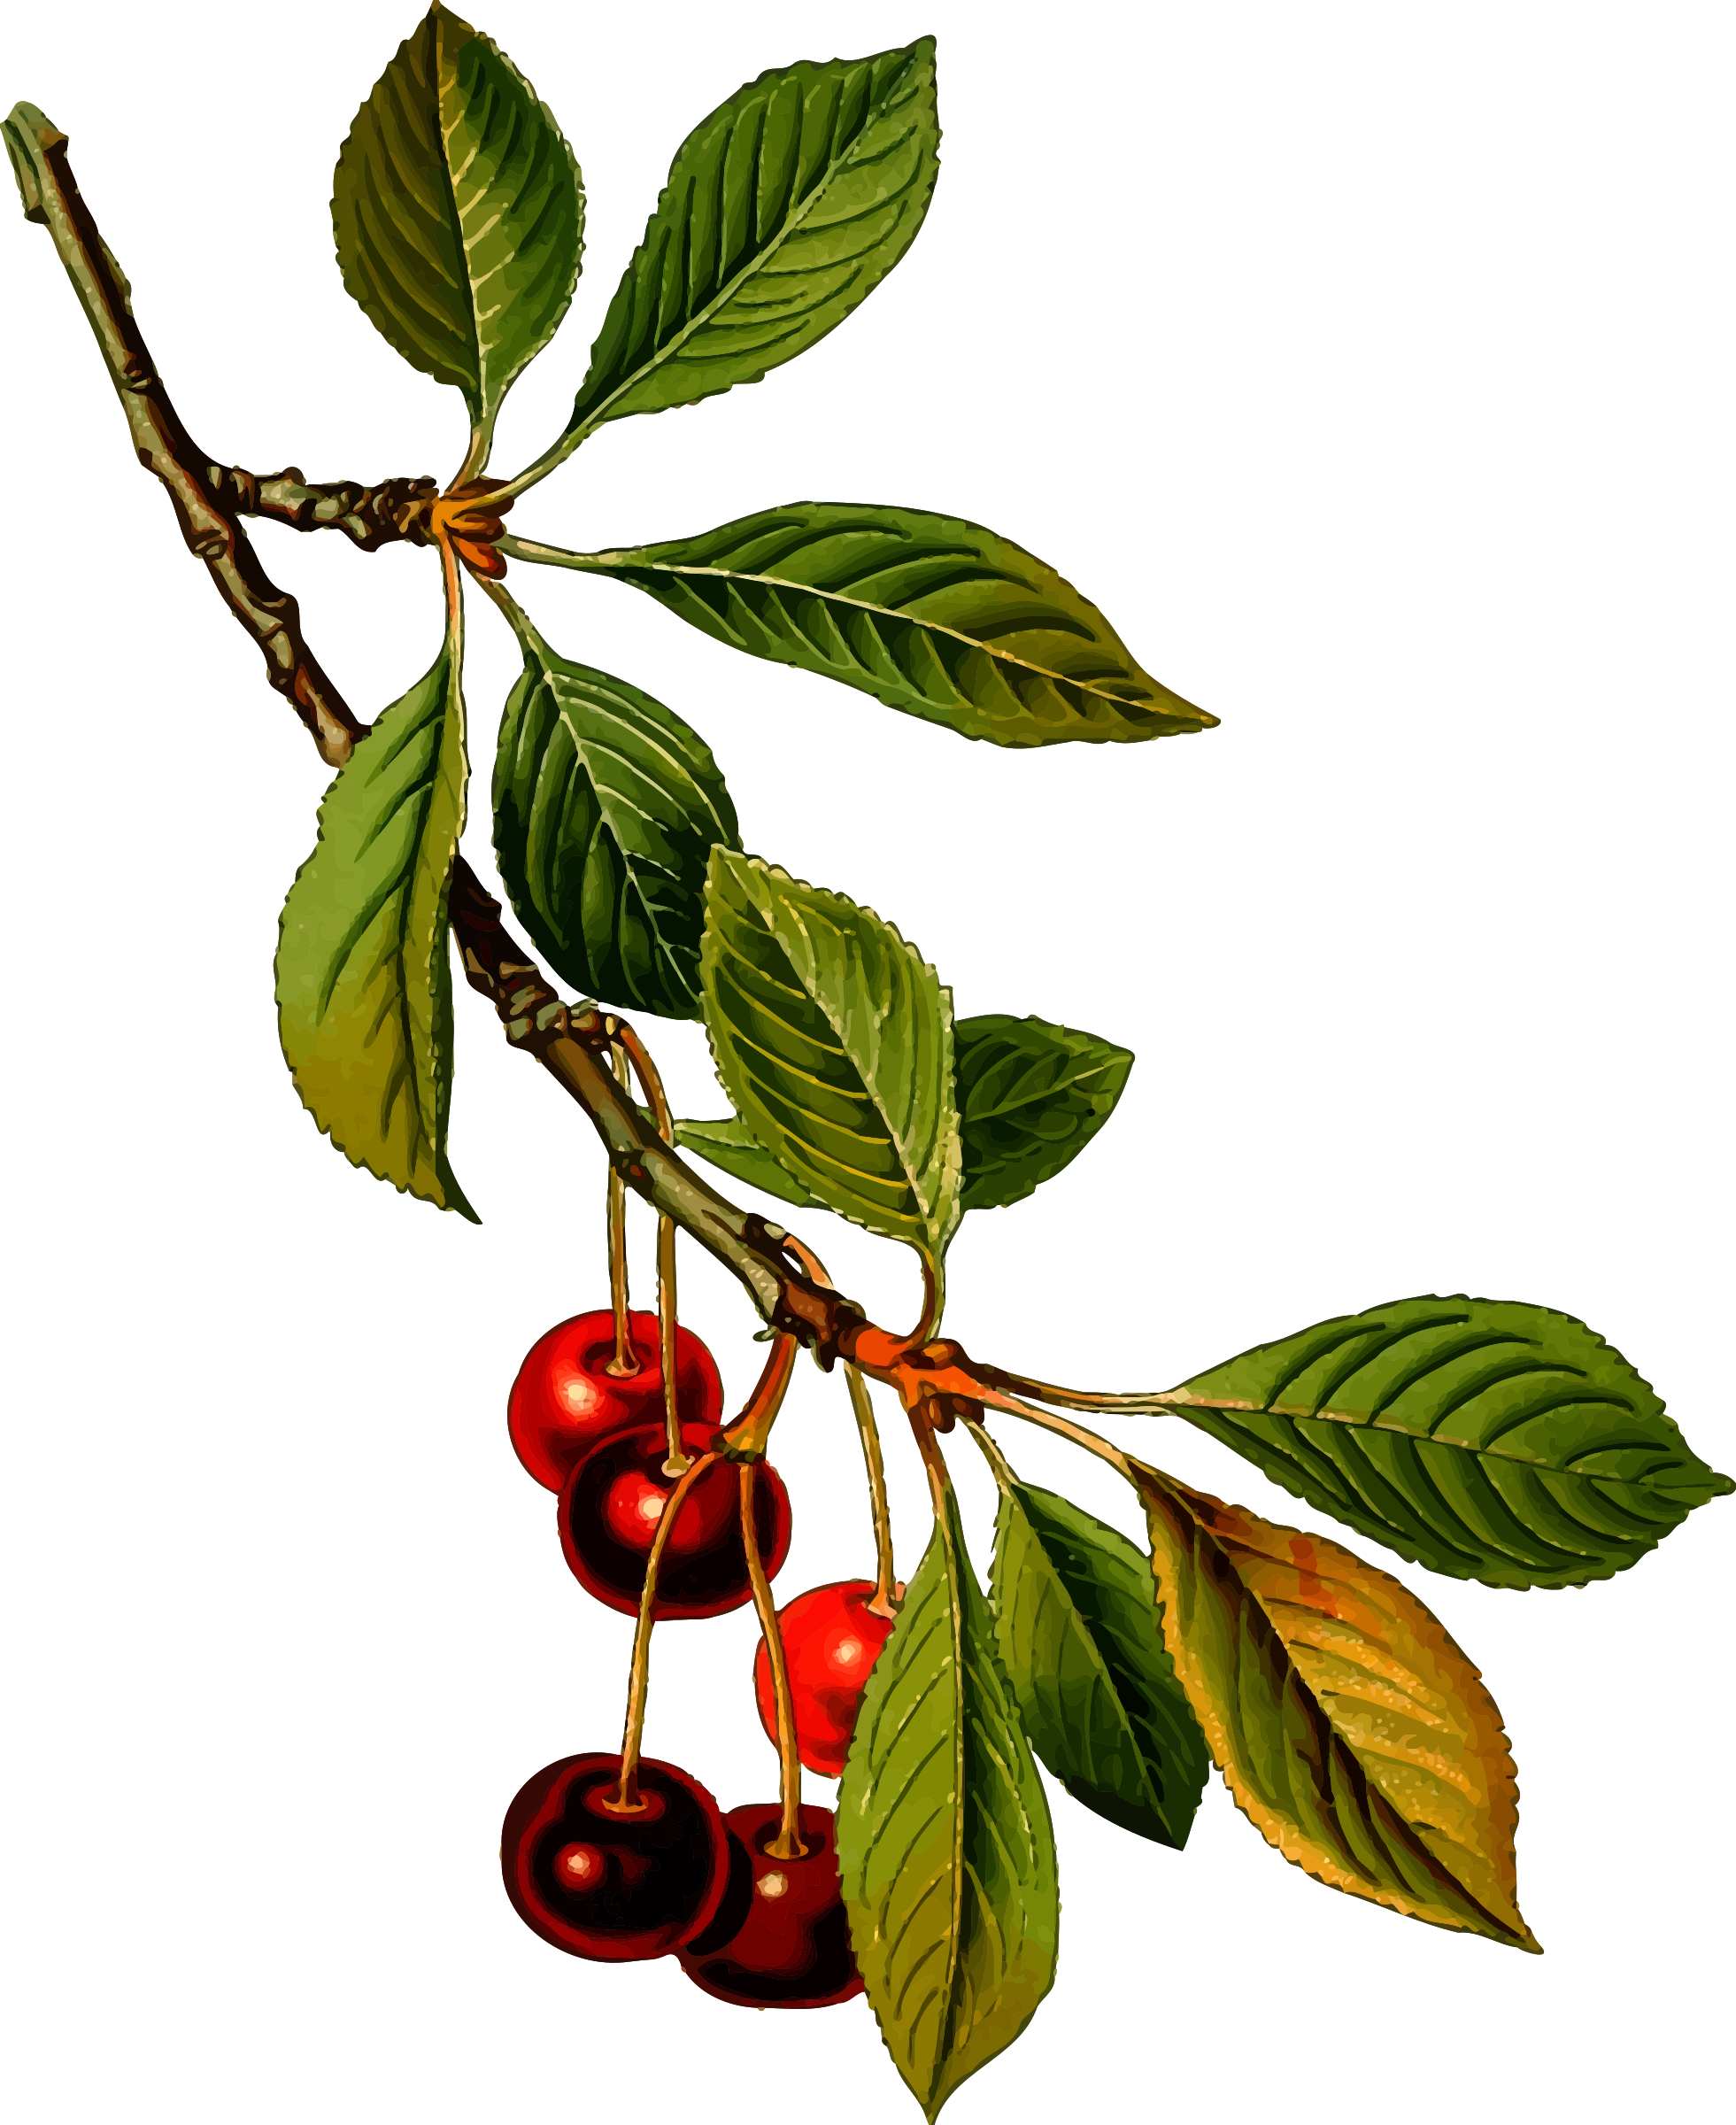 Sour cherry tree 2 (detailed) by Firkin